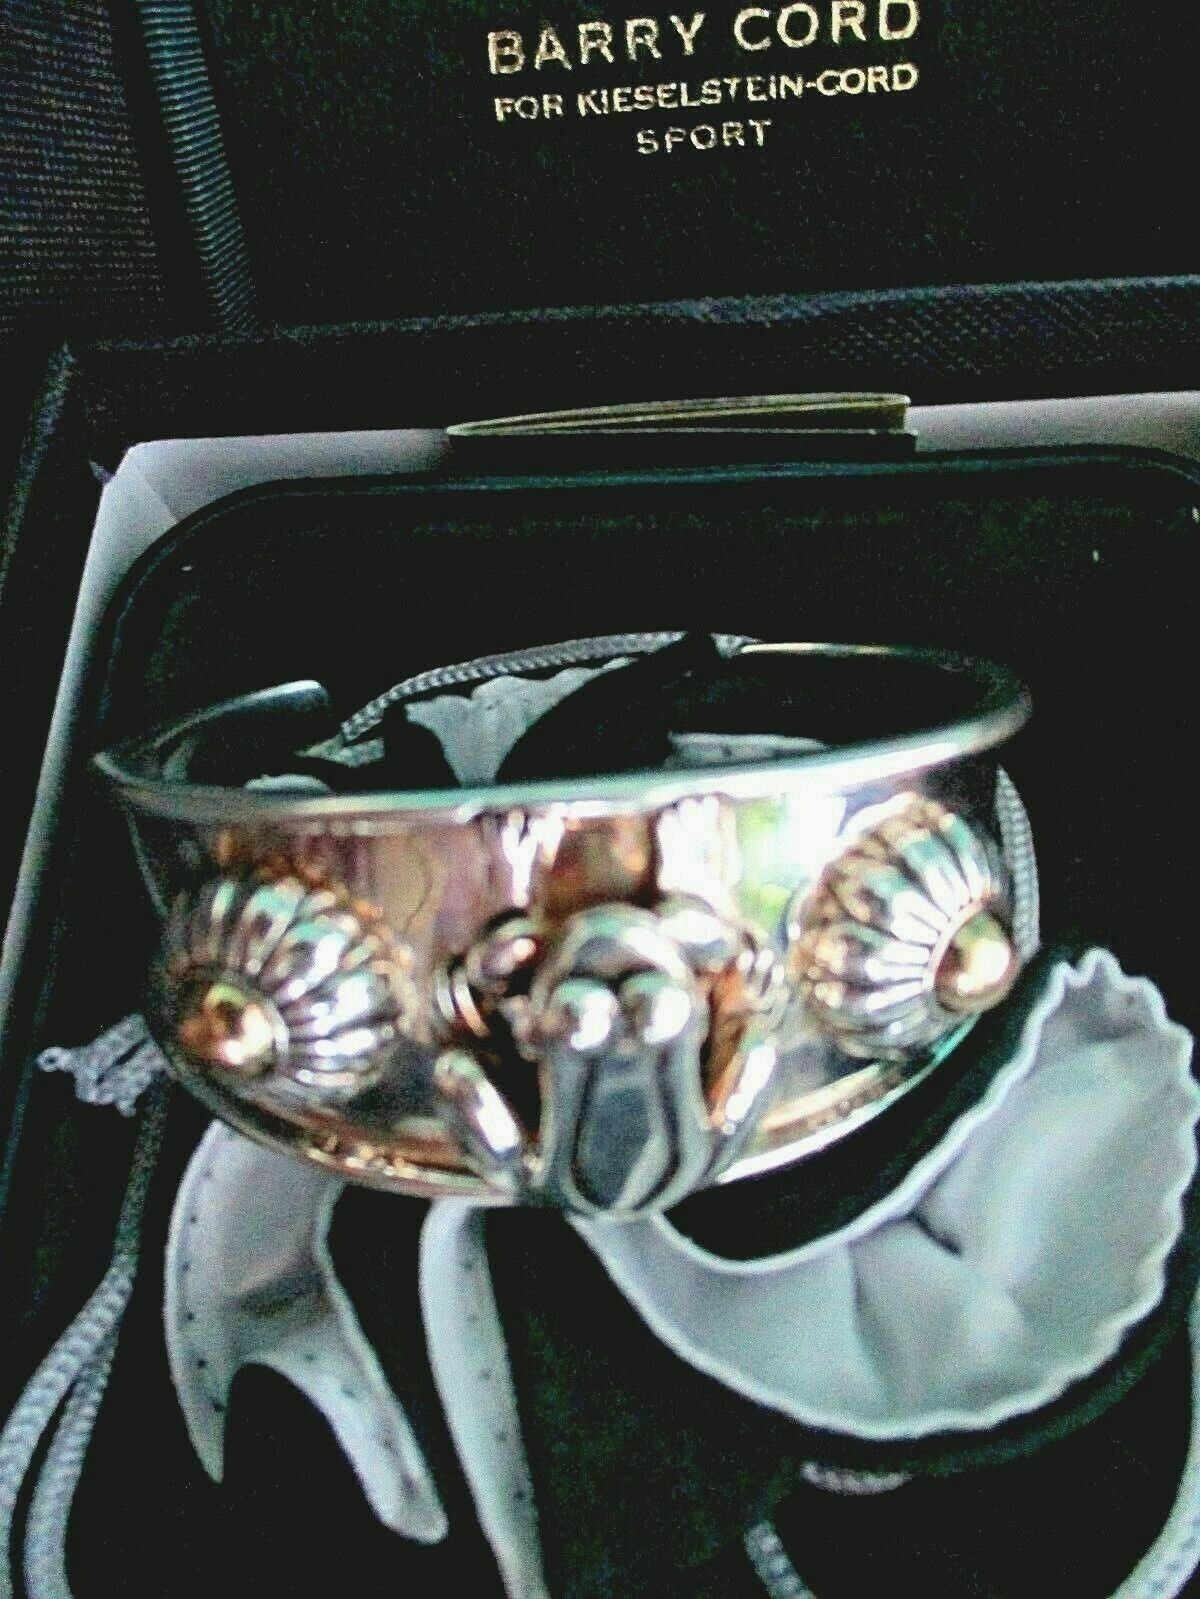 Barry Kieselstein Cord Frog & Flowers Cuff Bracelet Sterling & 14K Gold Orig Box